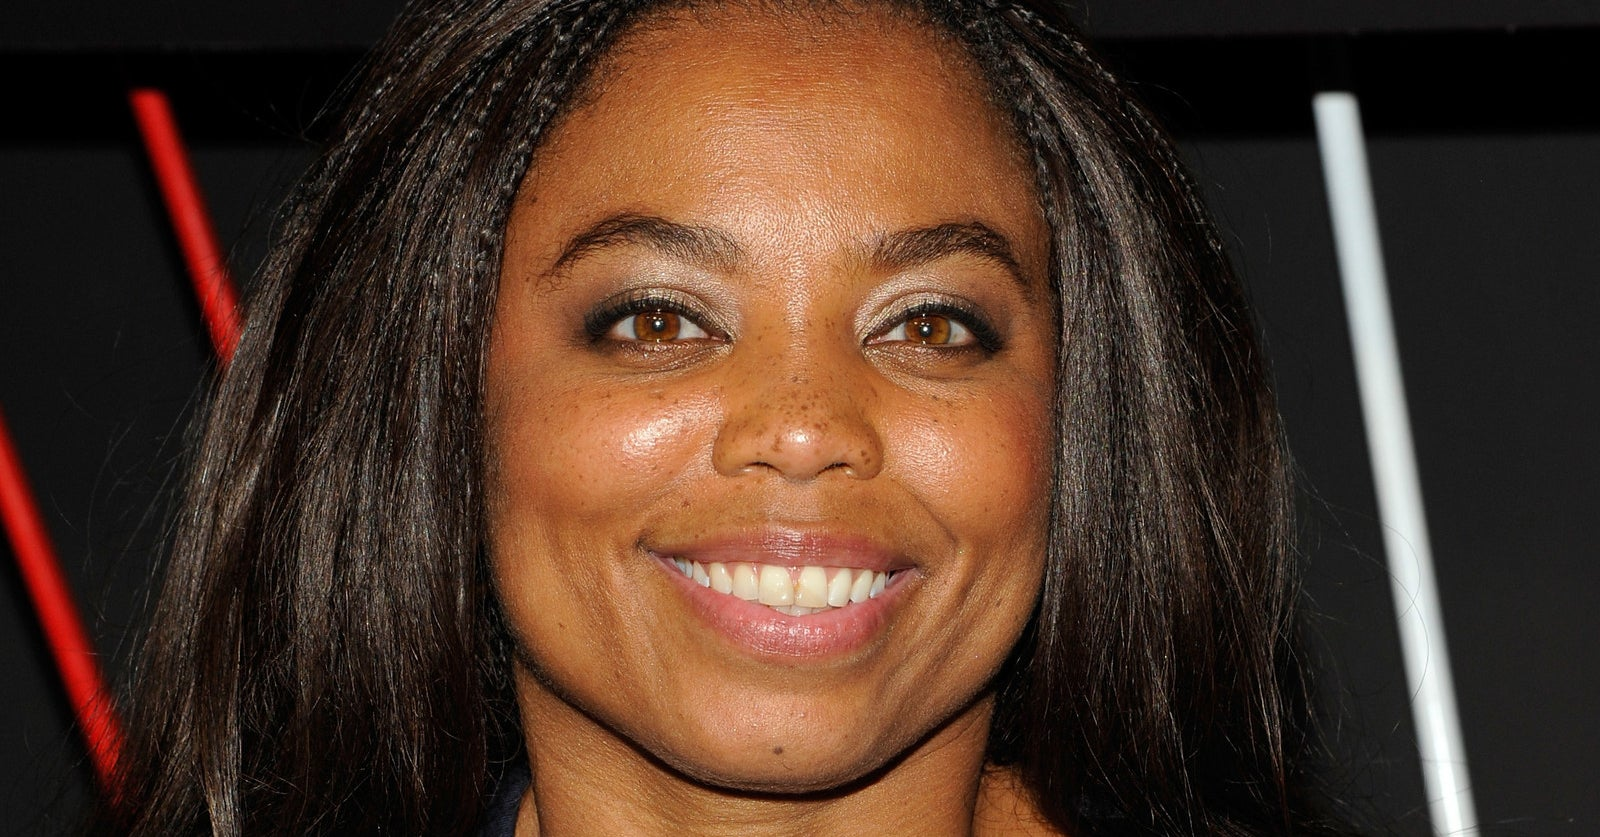 ESPN's Suspension Of Jemele Hill Shows How Little They Value Her